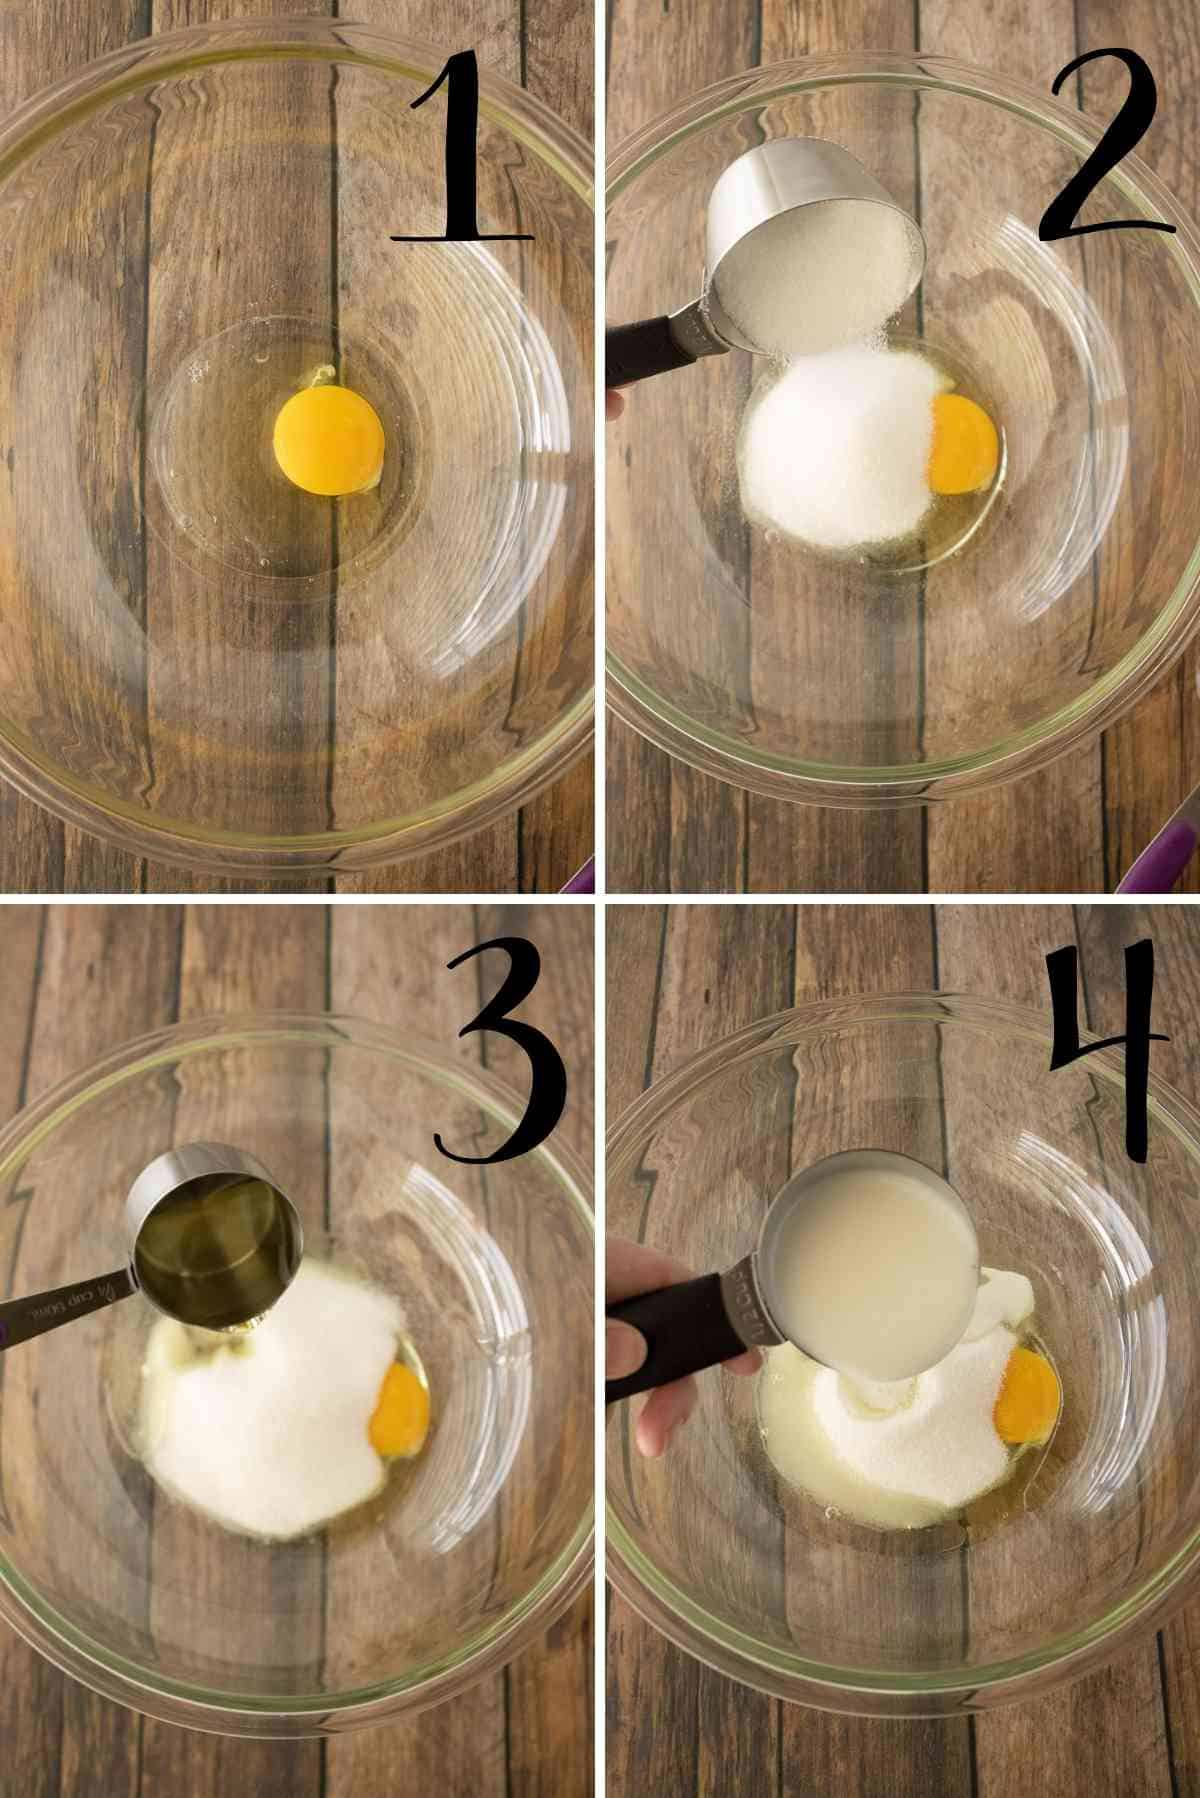 Egg, sugar, olive oil and buttermilk in a milking bowl.